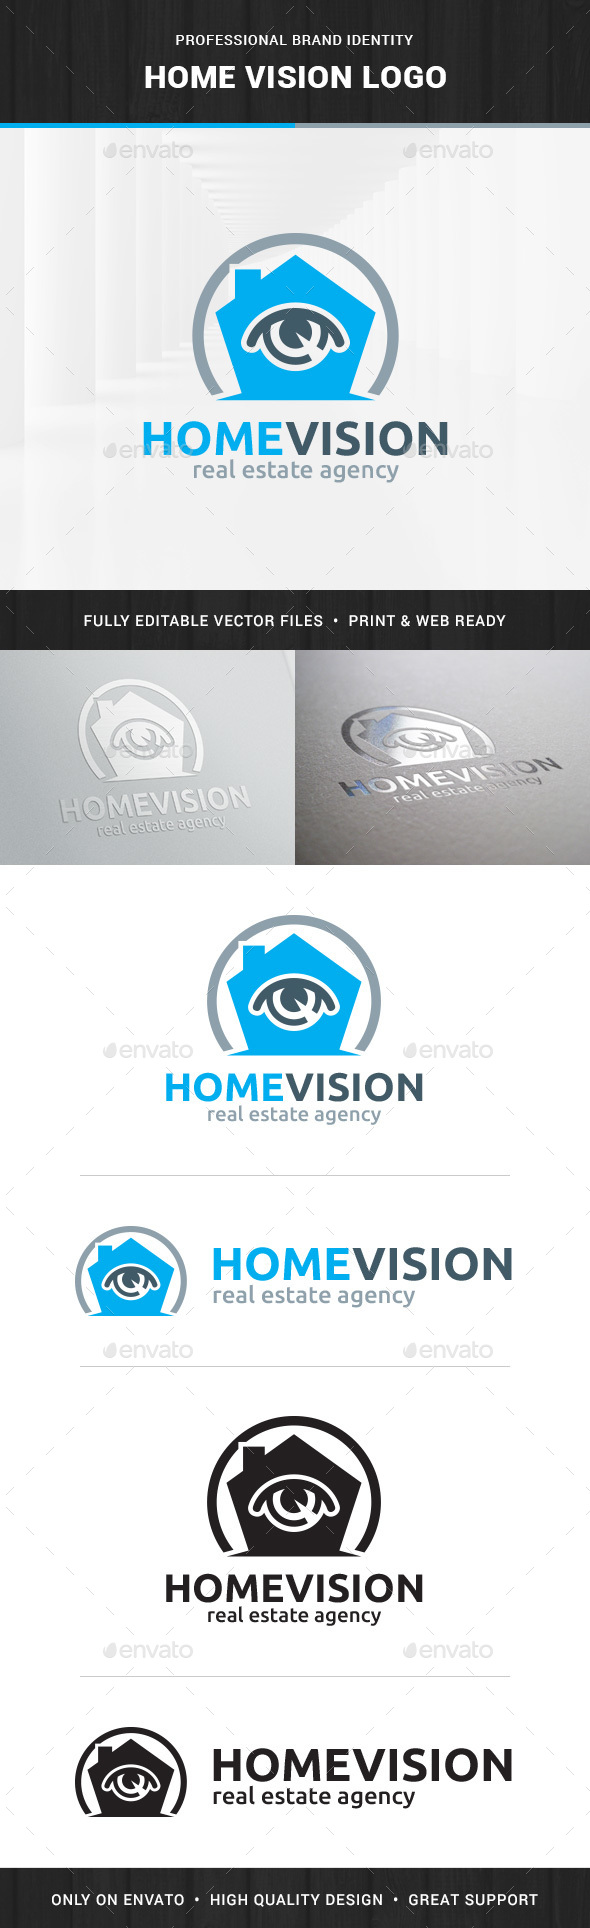 Home Vision Logo Template